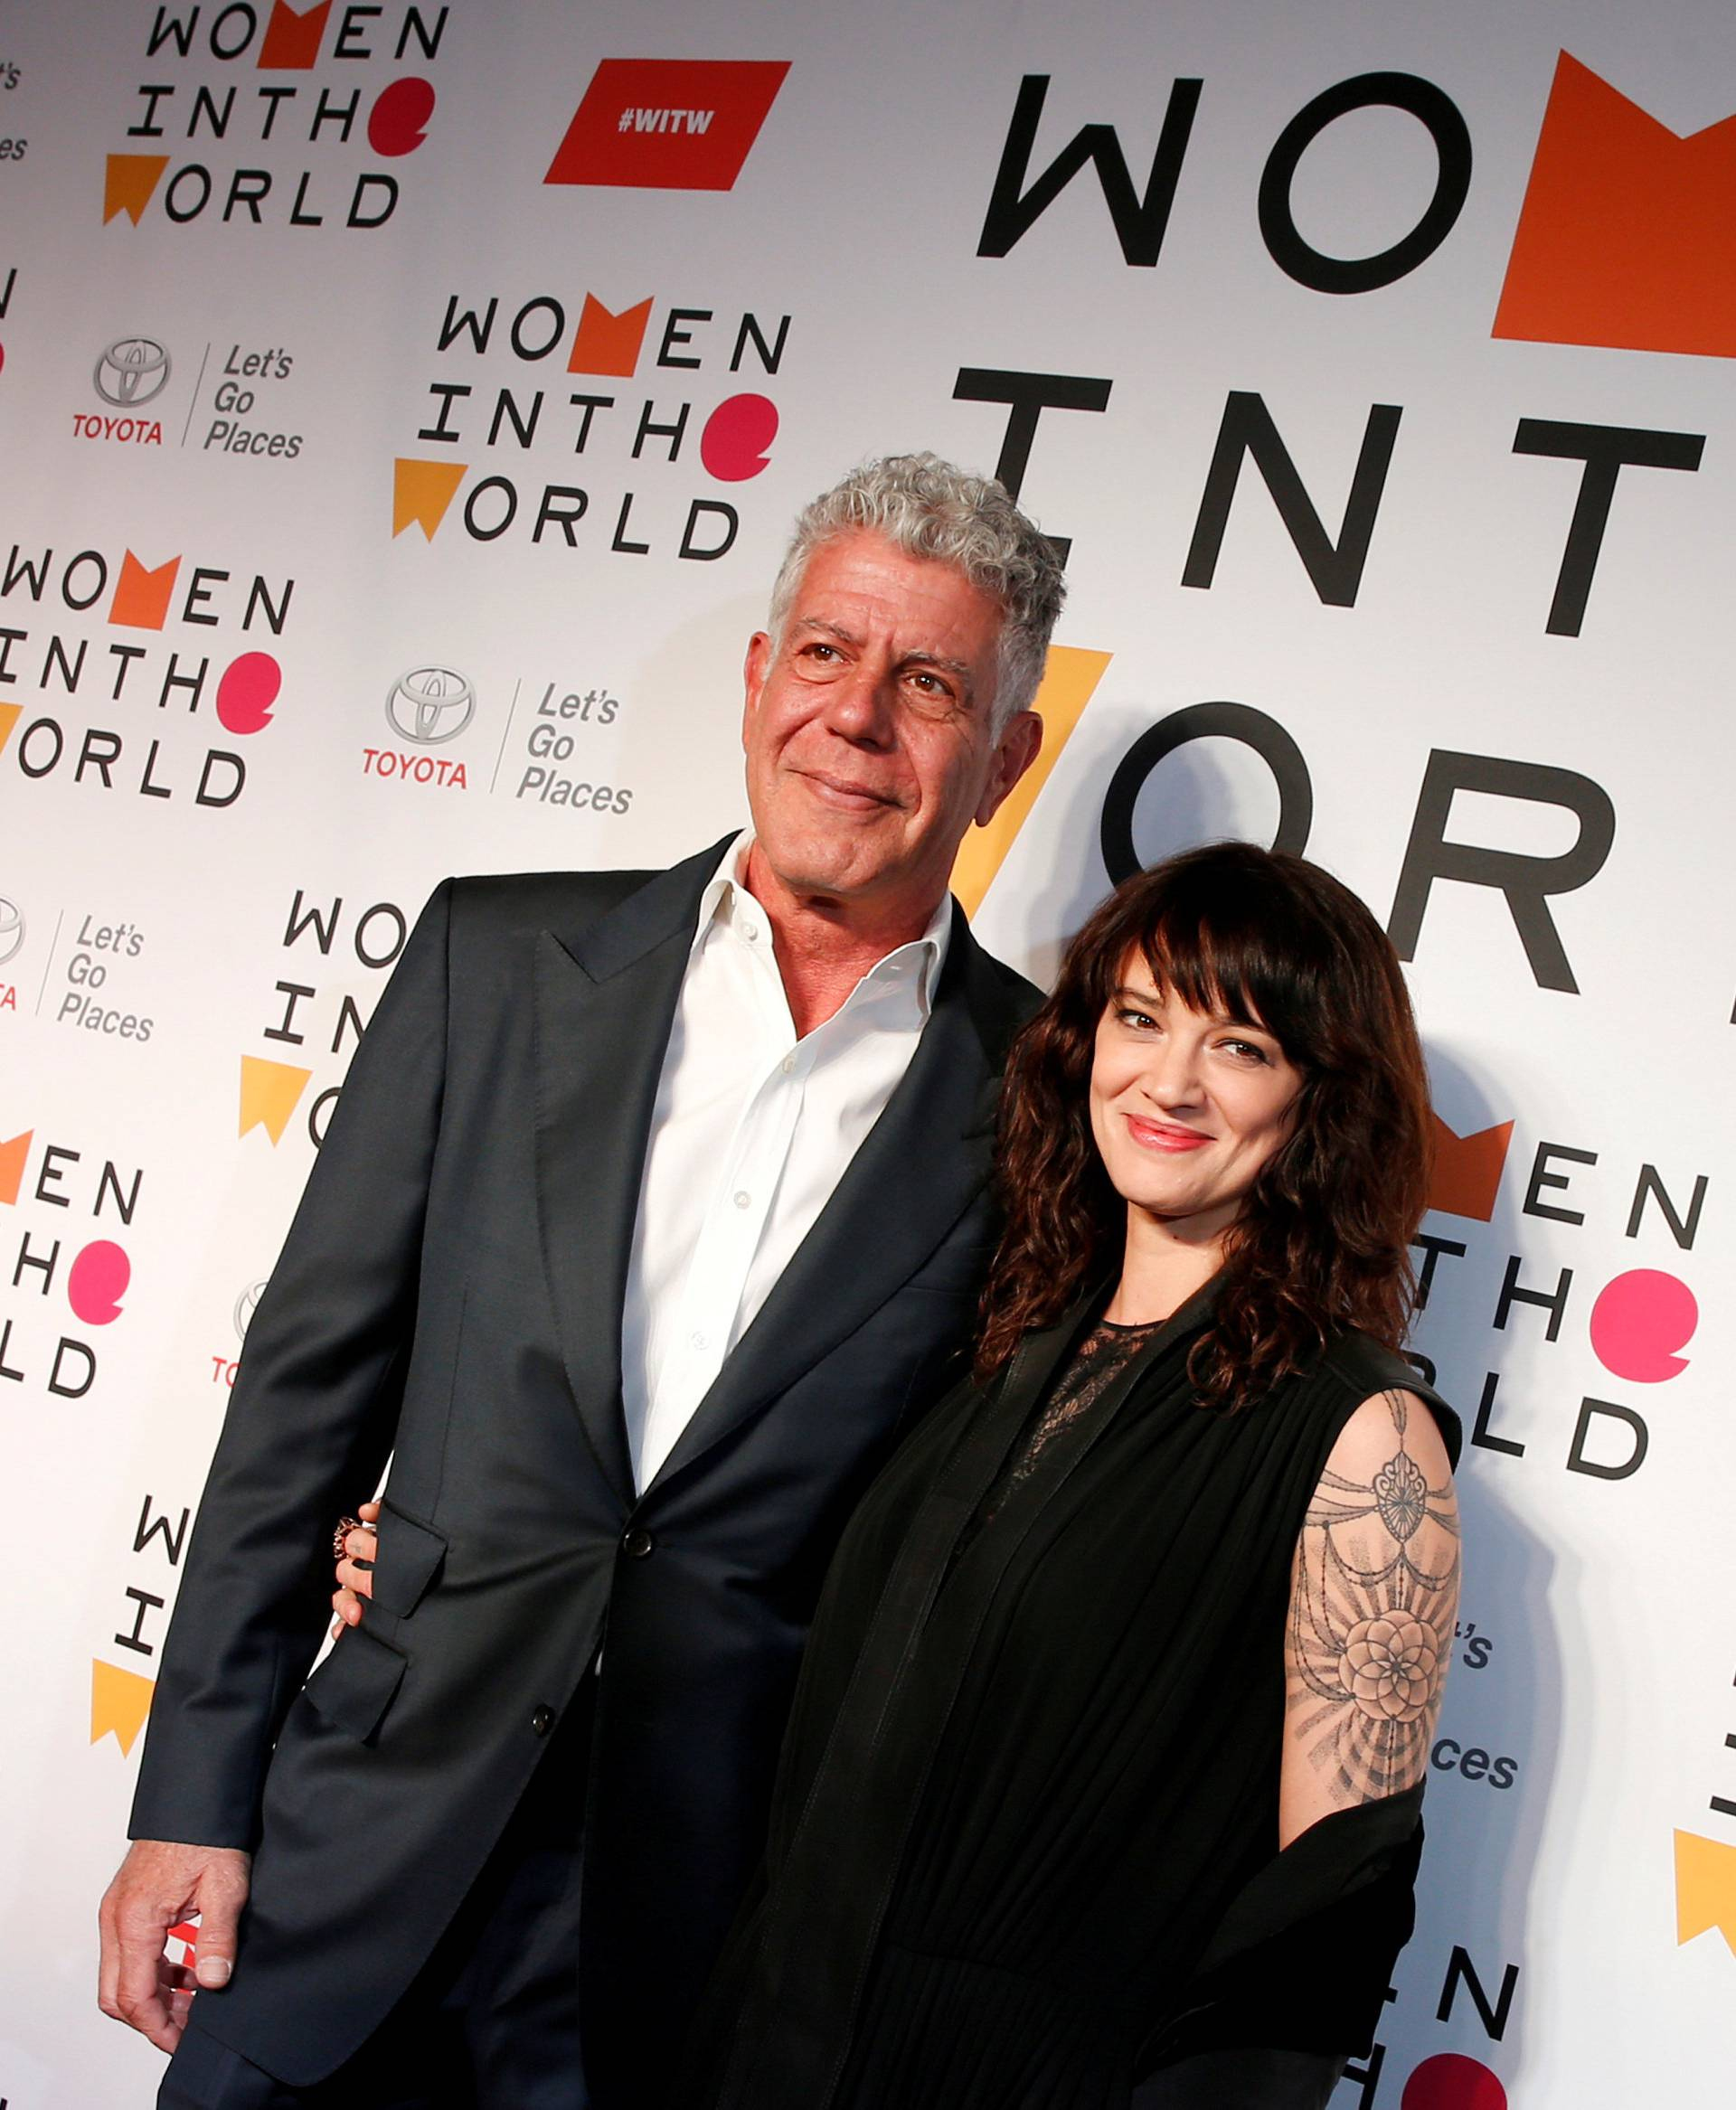 FILE PHOTO: Anthony Bourdain poses with Italian actor and director Asia Argento for the Women In The World Summit in New York